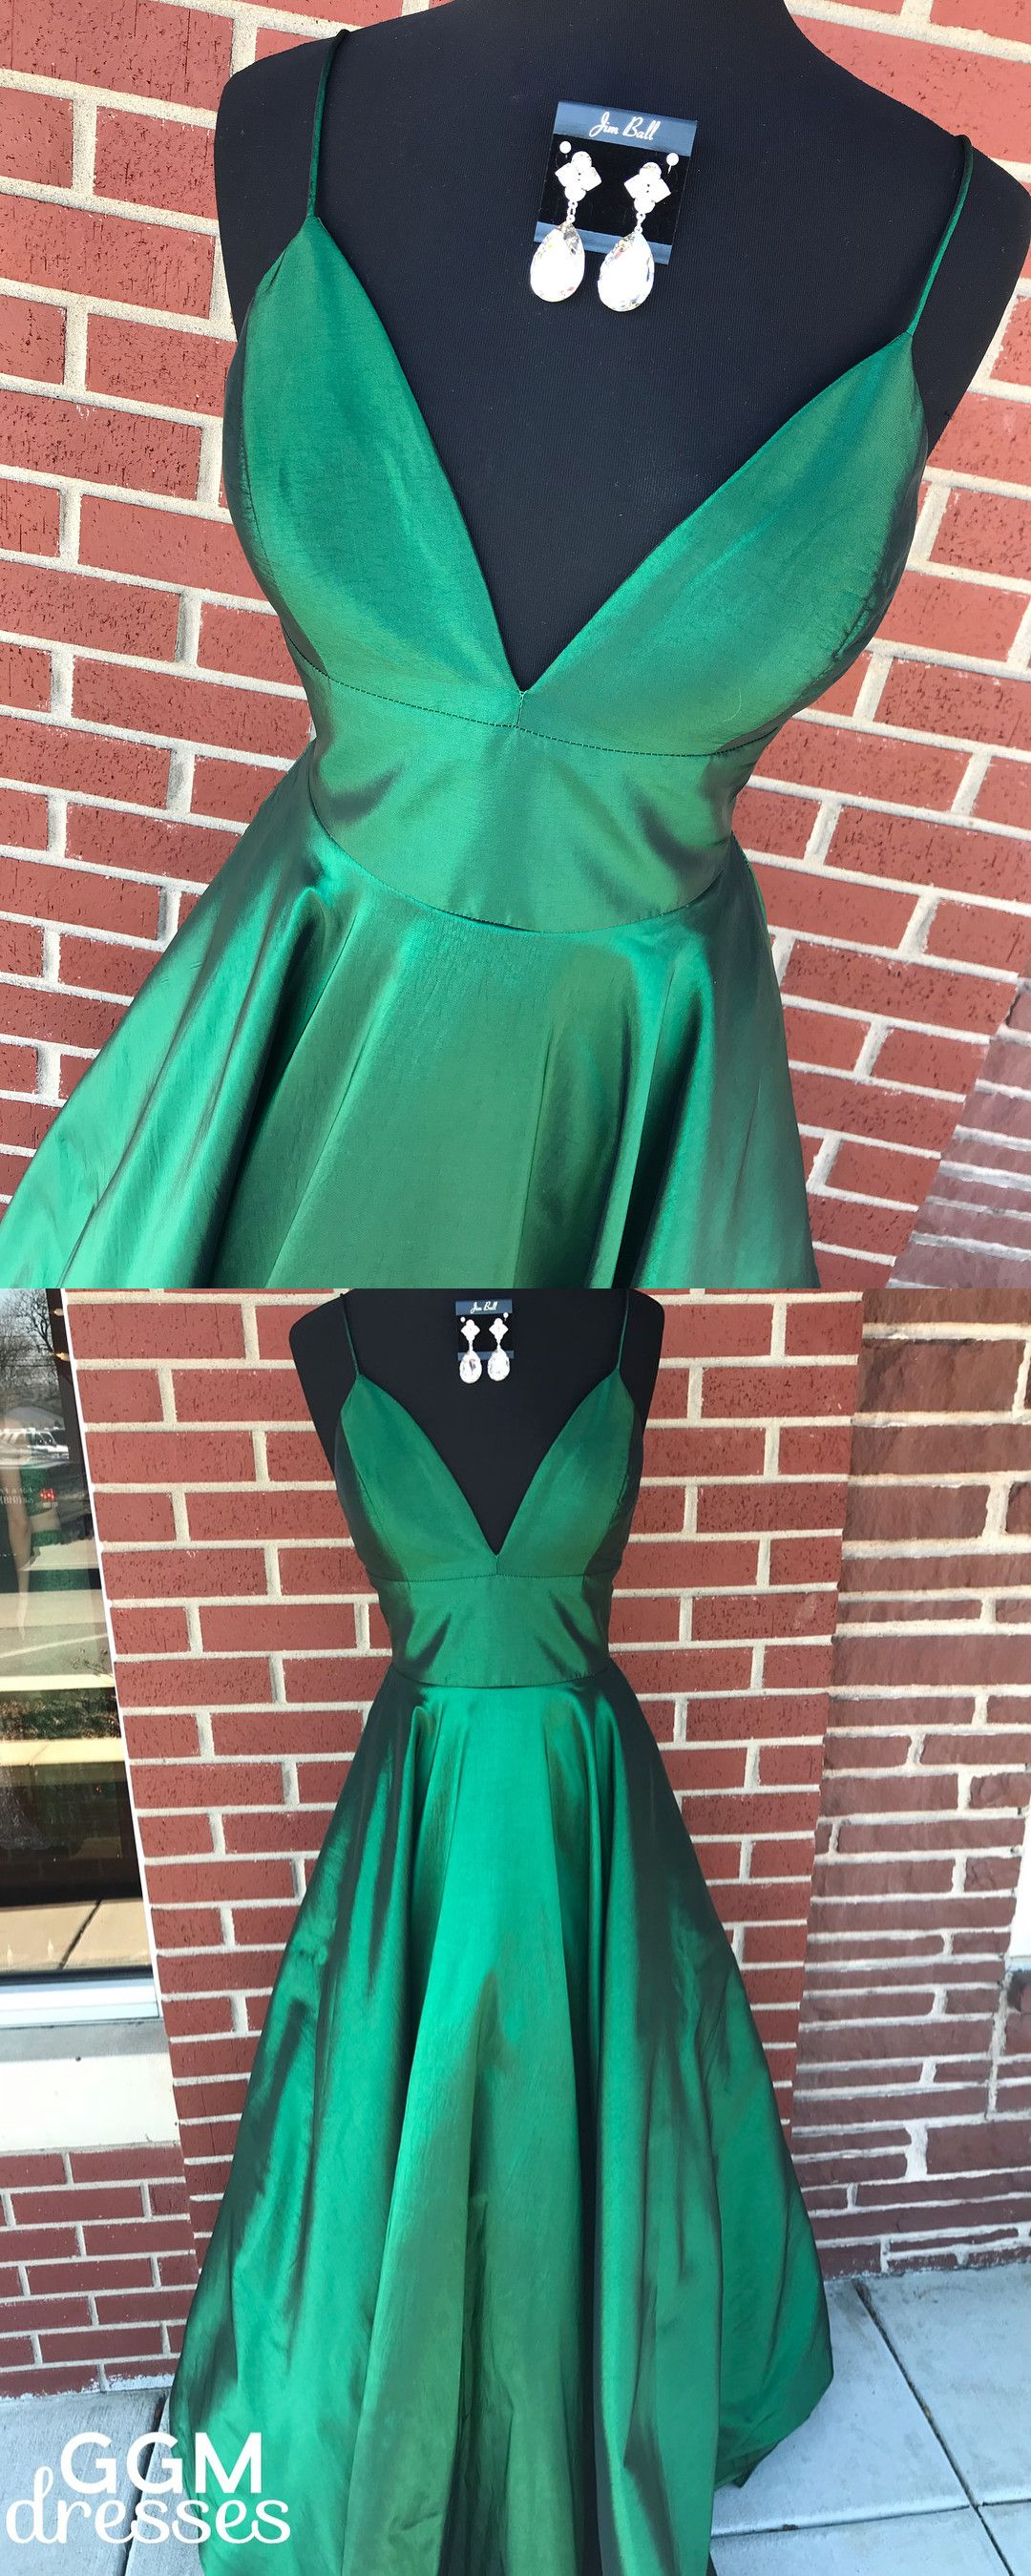 Straps green long prom dress prom dress party dress dancing